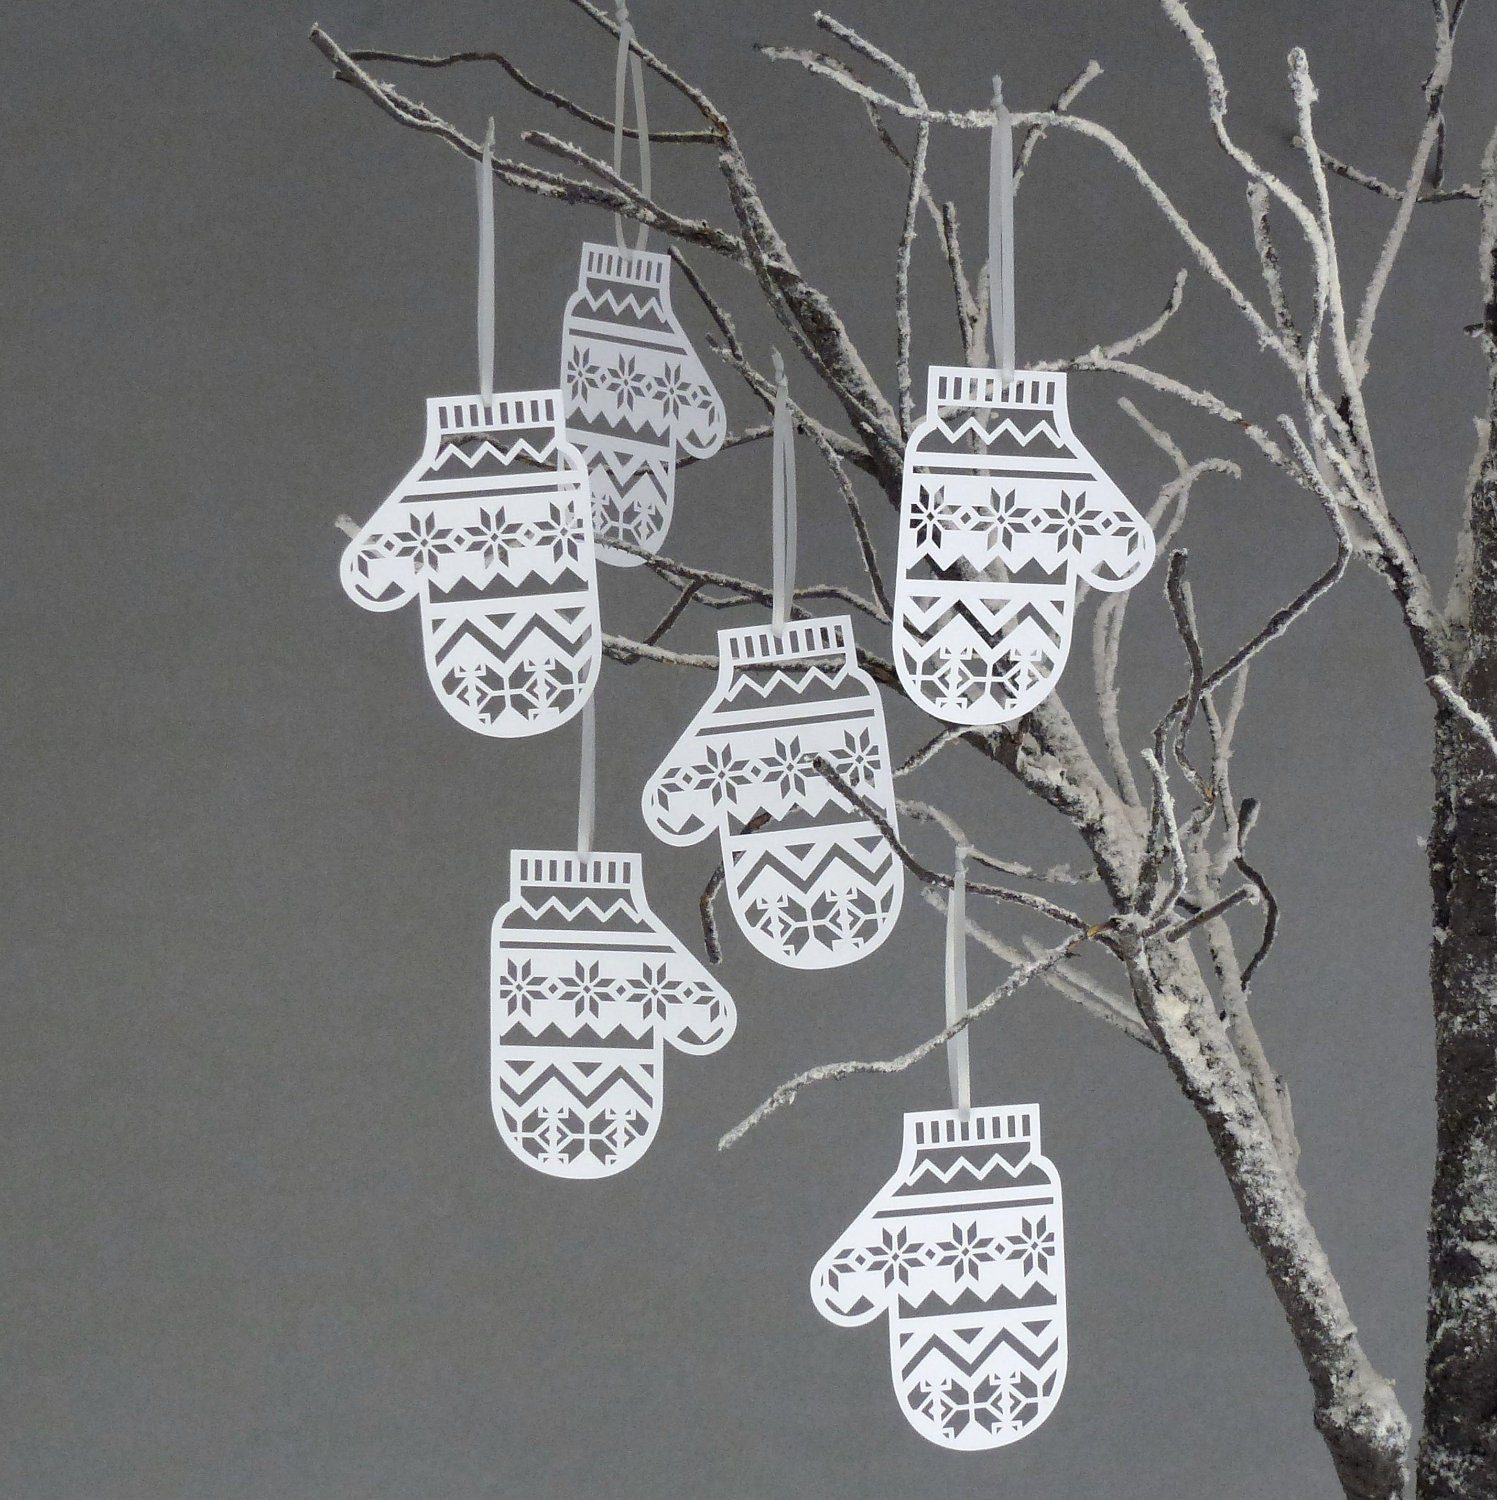 Set of Six Papercut Mitten Christmas Tree Decorations - sarahlouisematthews